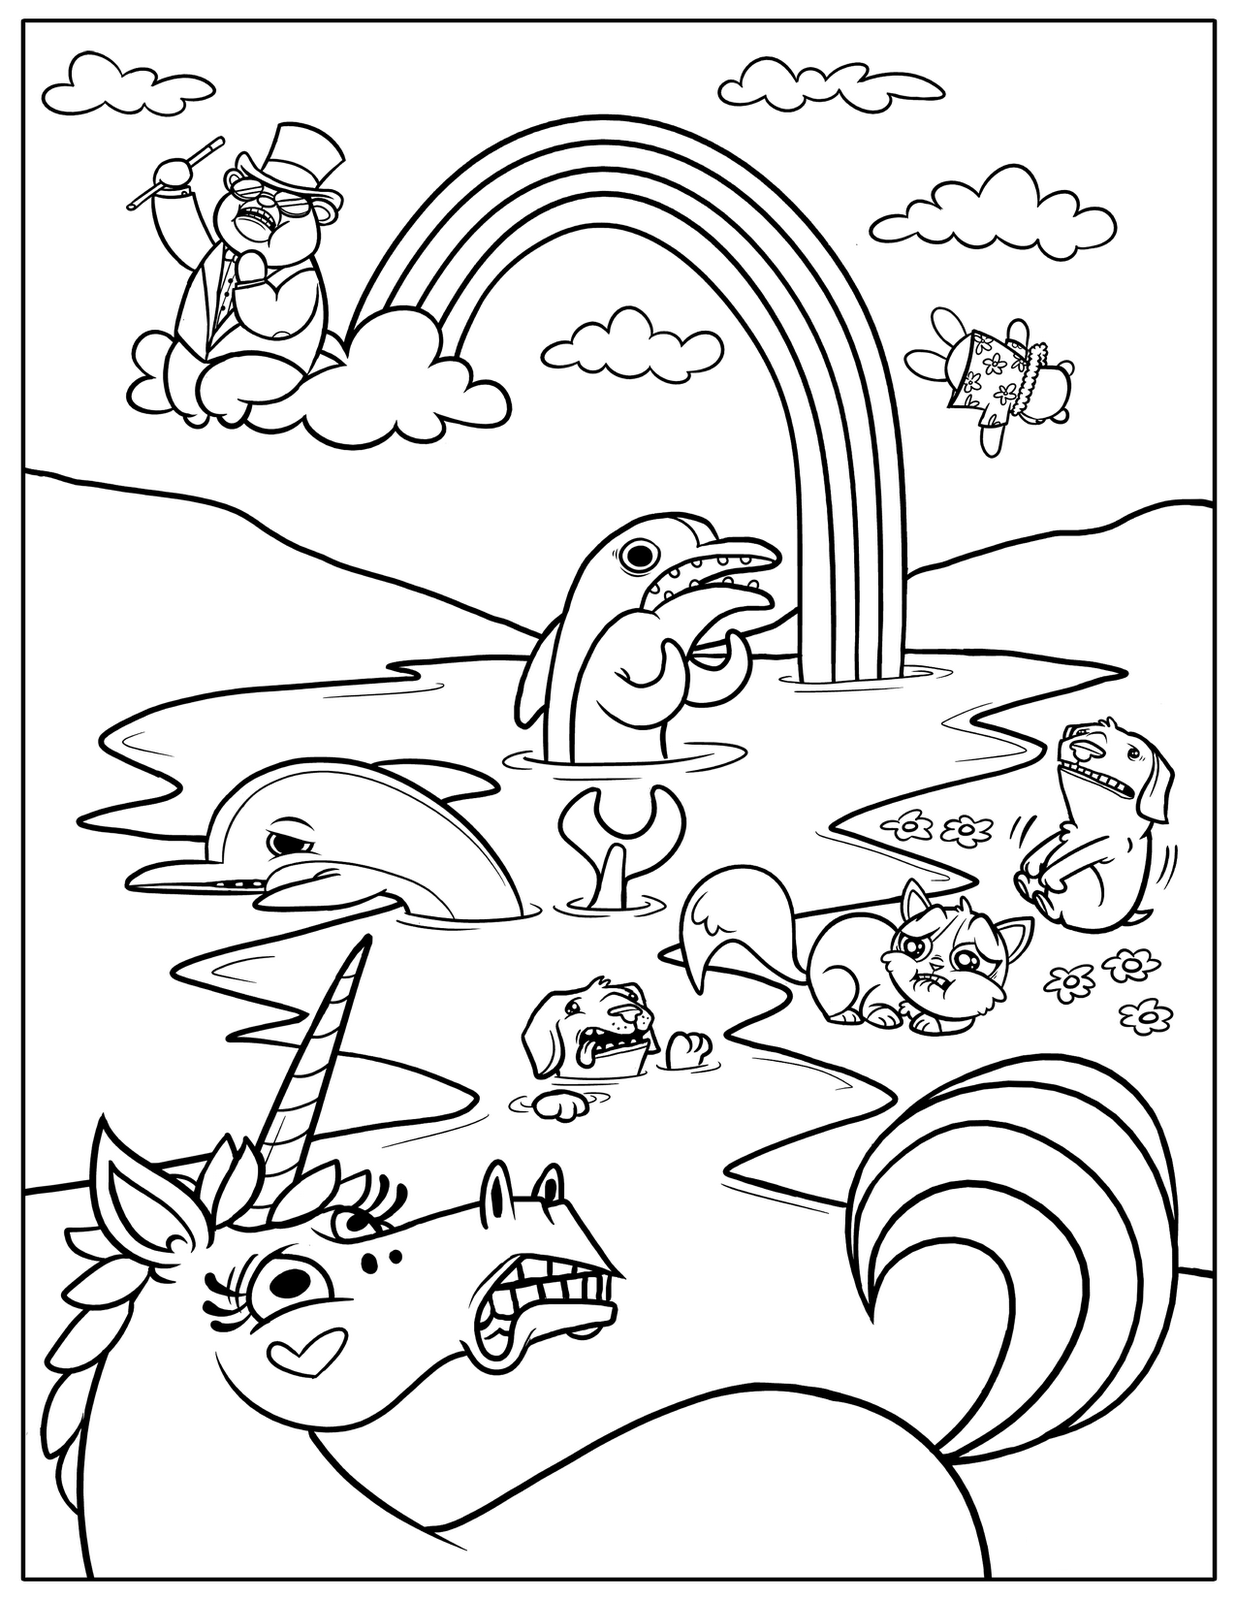 rainbow coloring pages kids printable - Colouring In For Kids